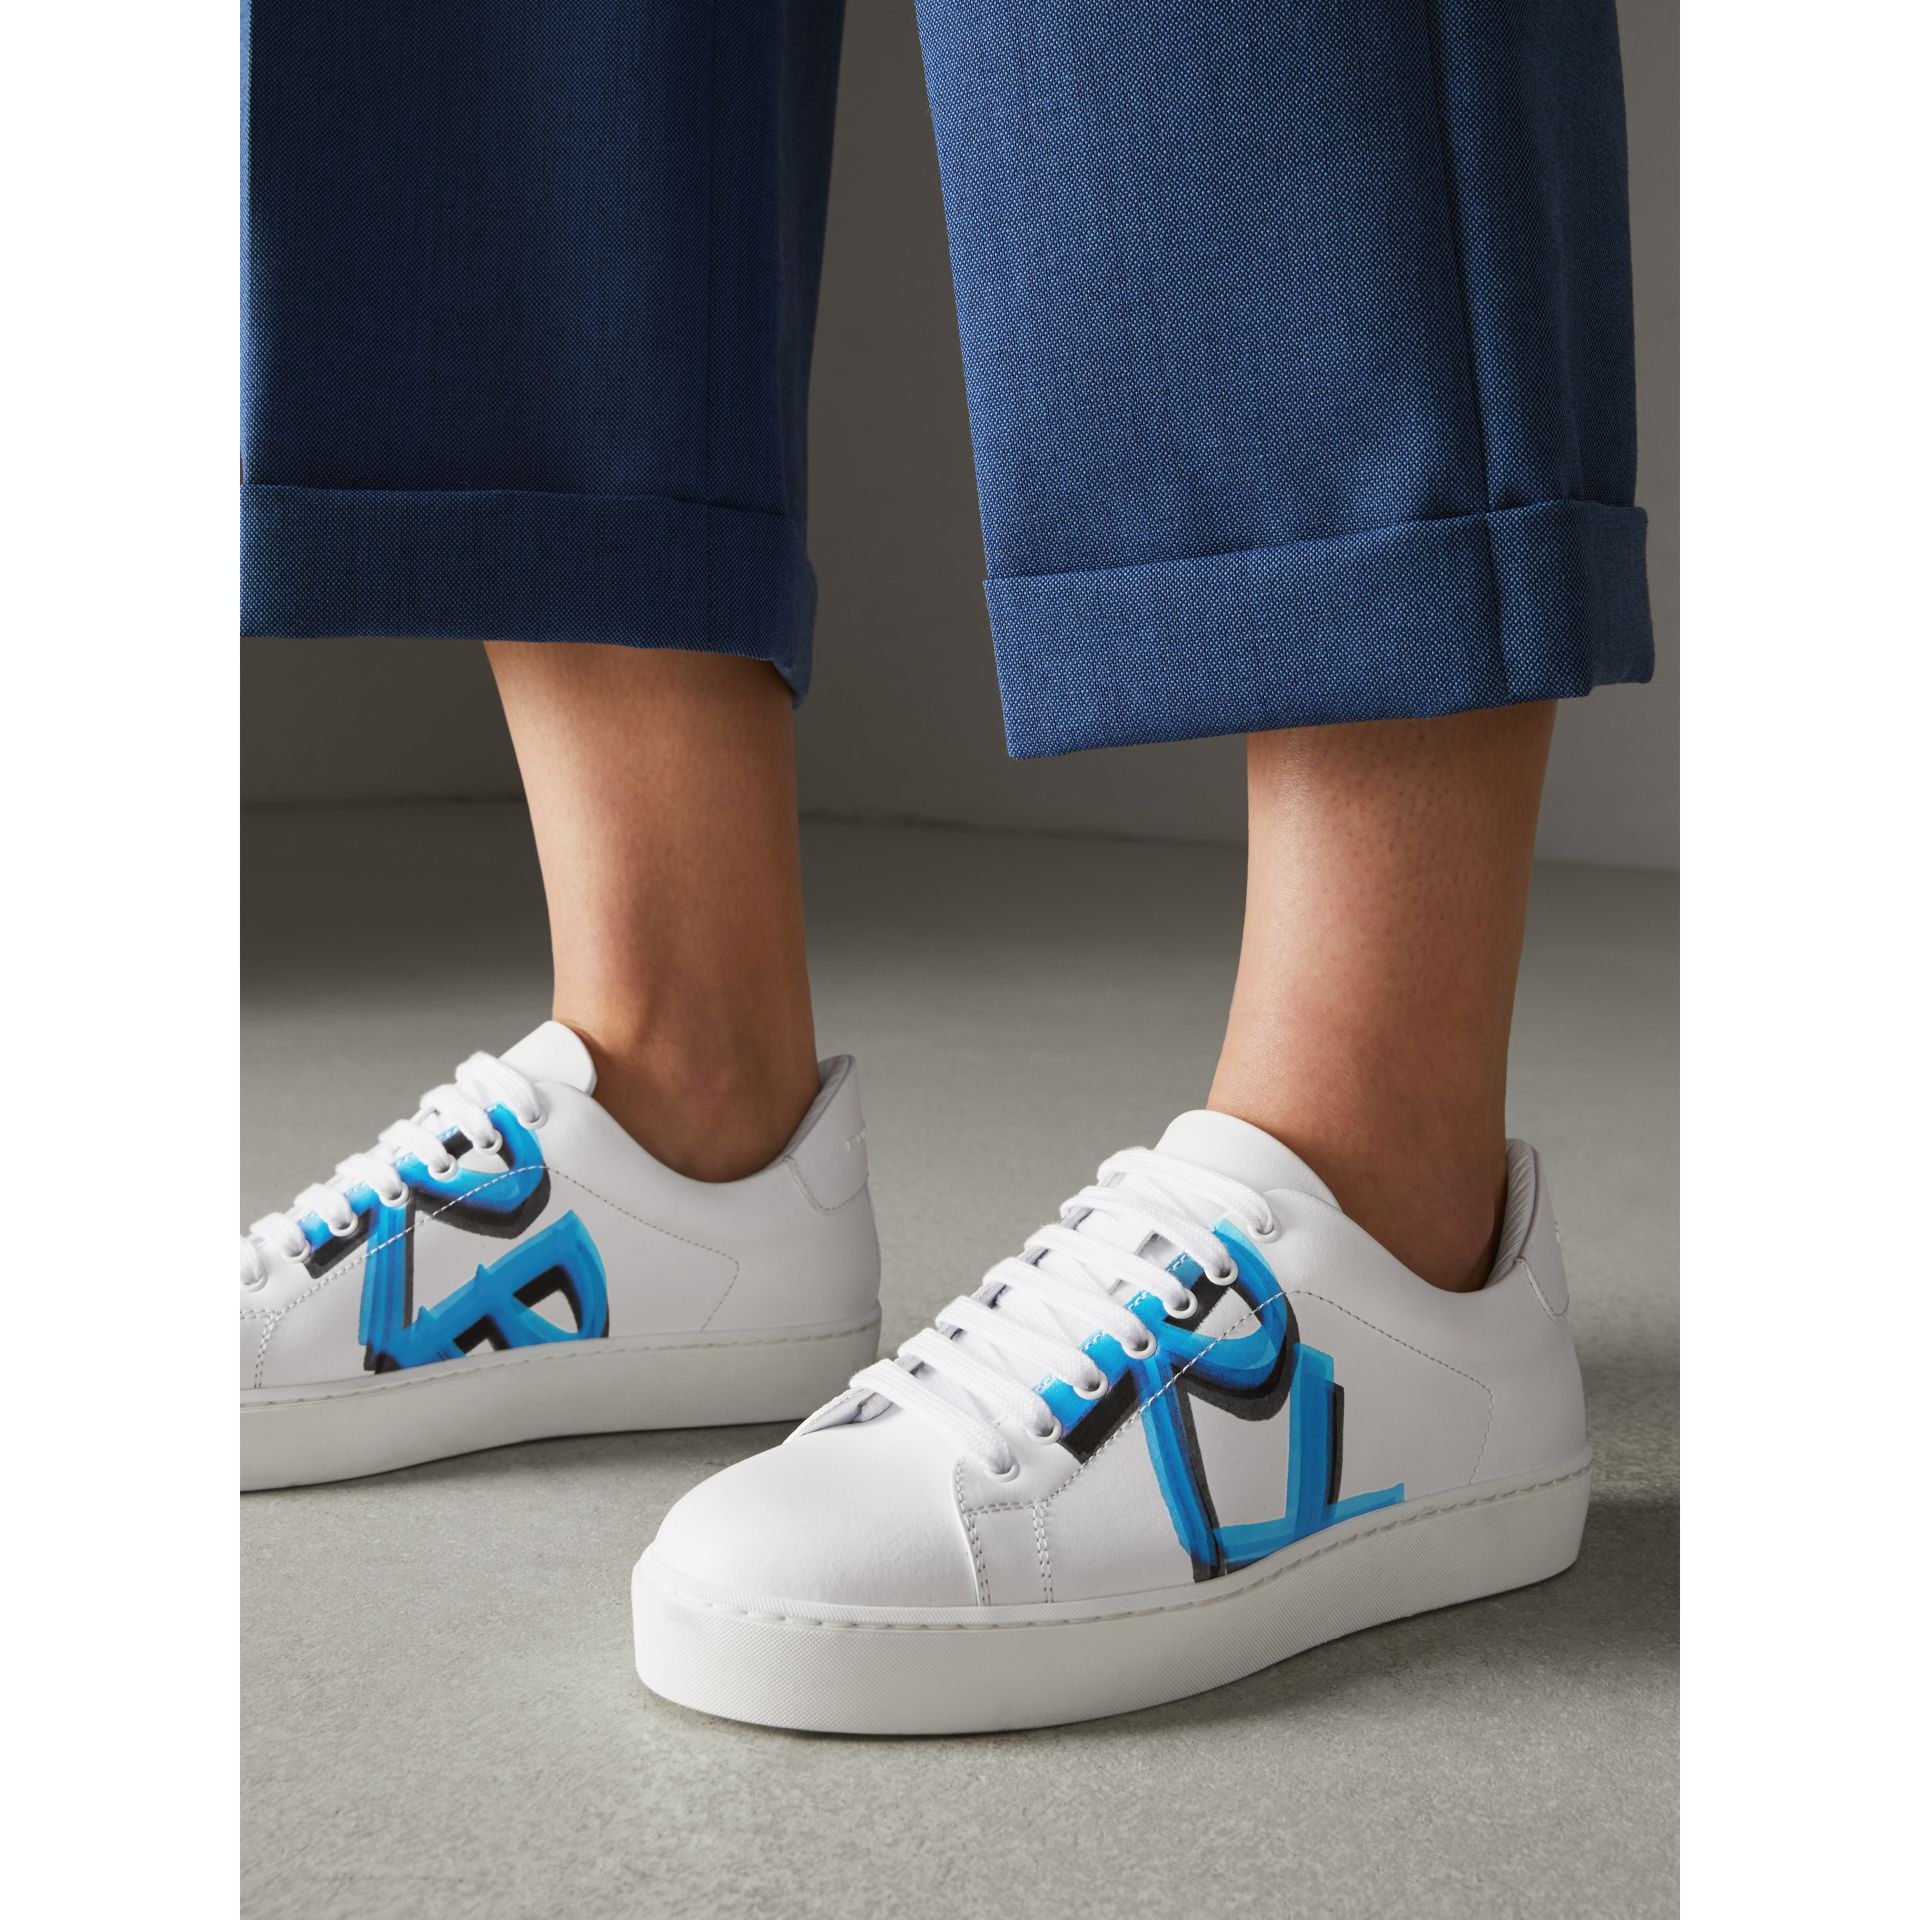 Graffiti Print Leather Sneakers in Bright Sky Blue - Women | Burberry Canada - gallery image 2